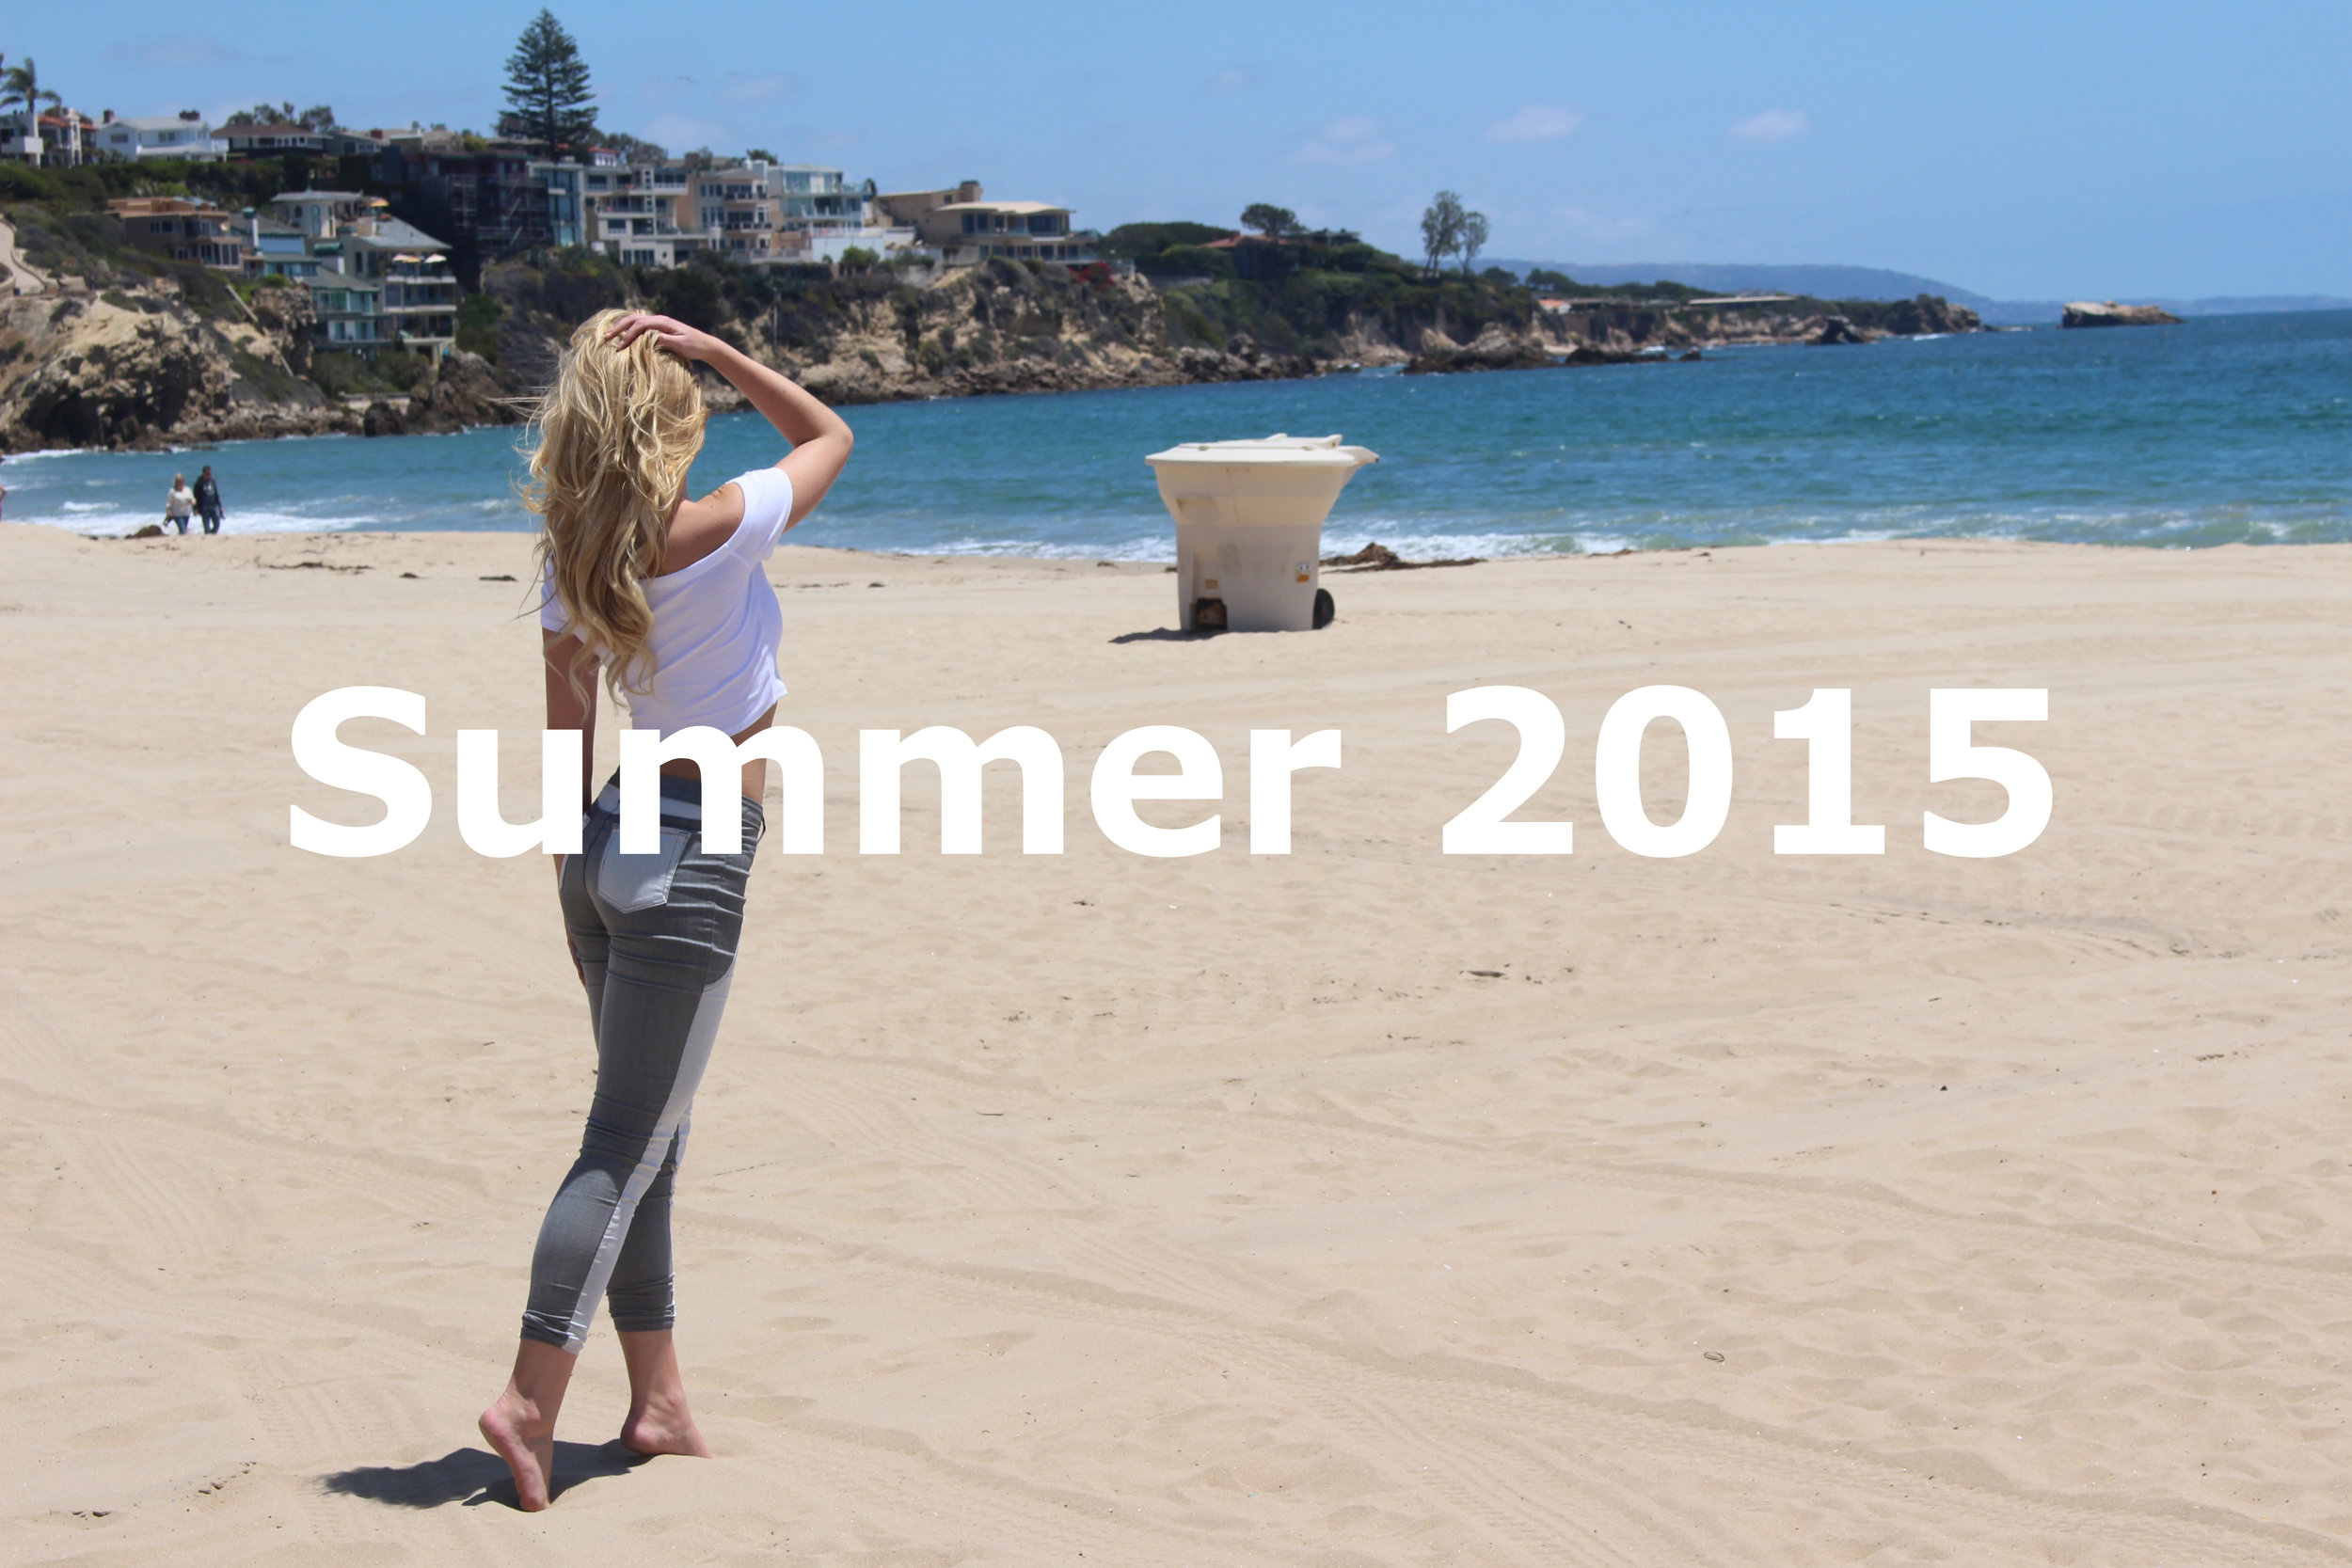 View the Summer 2015 Lookbook